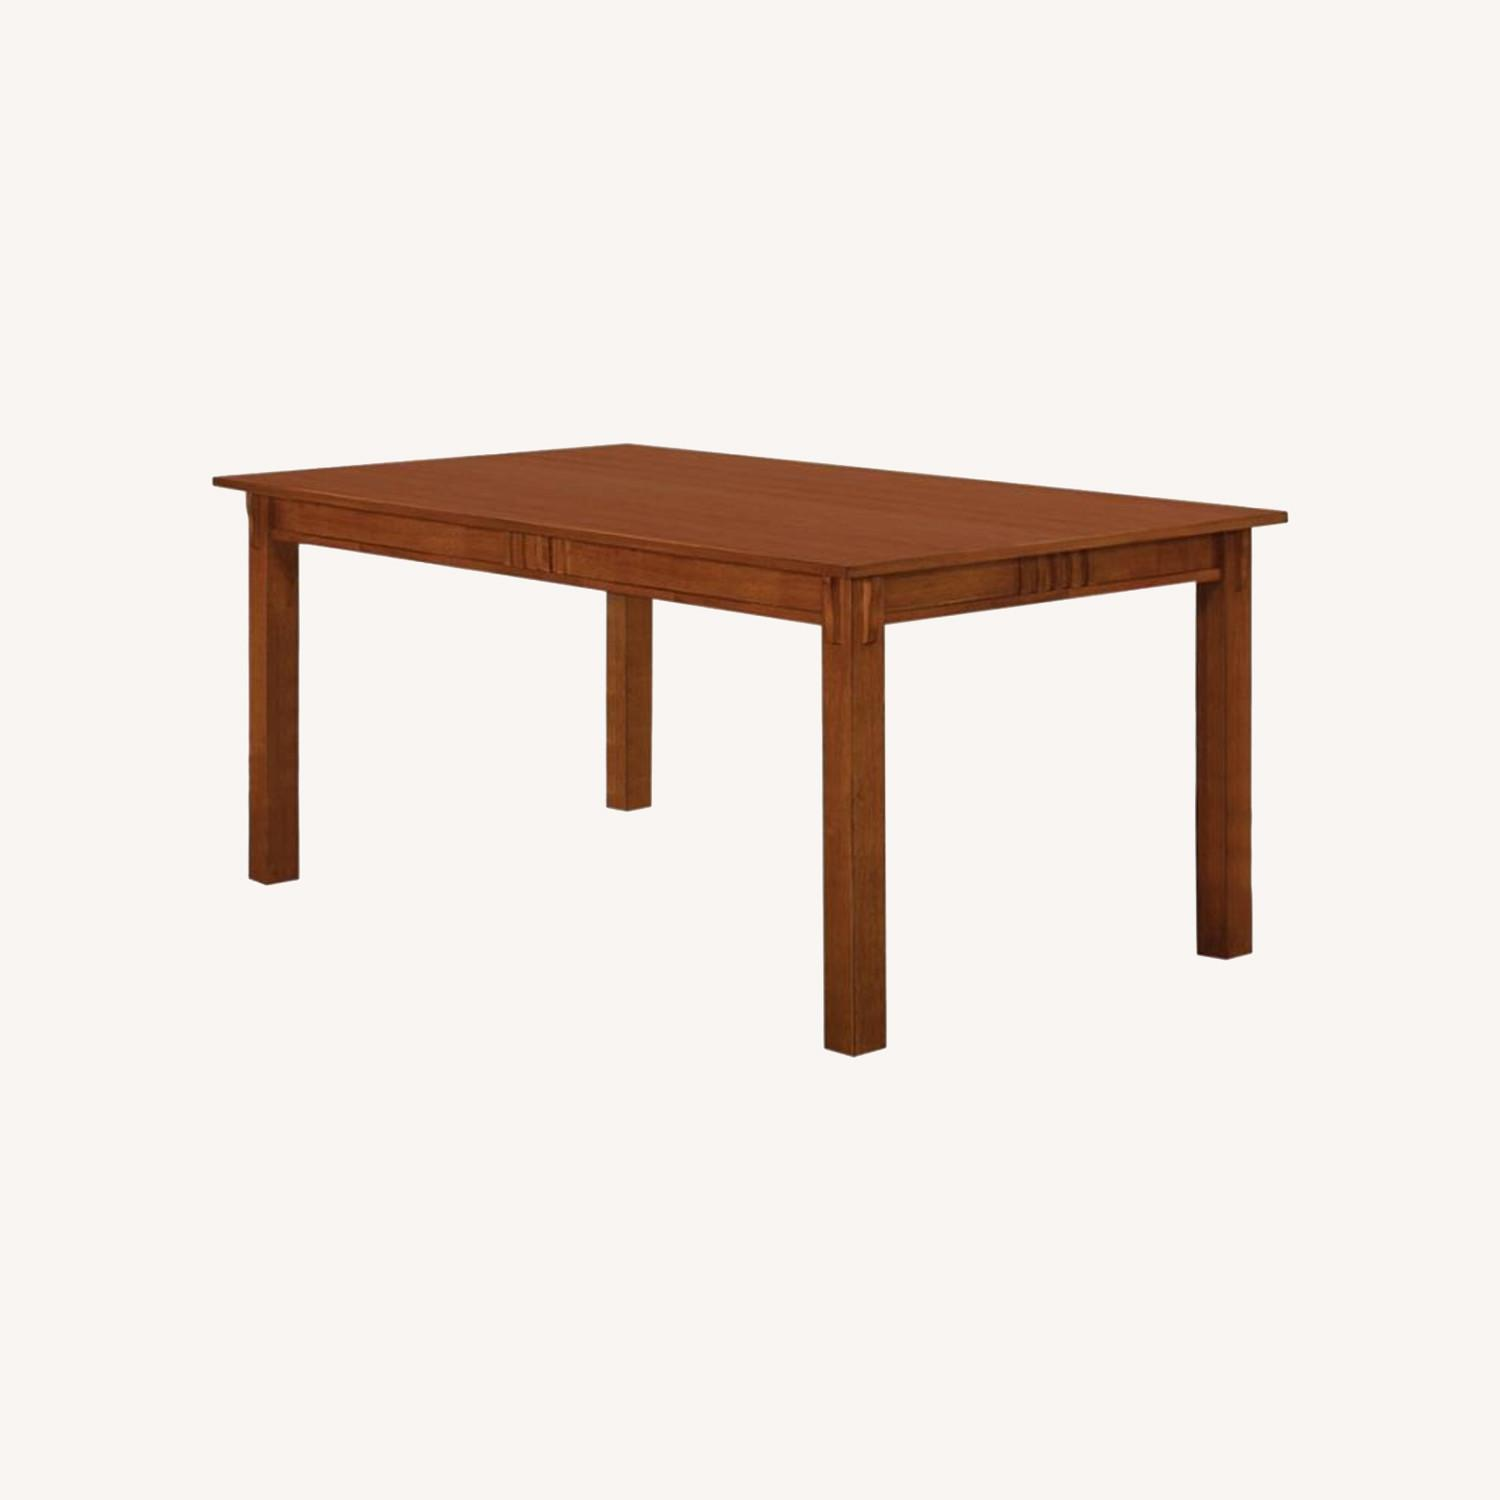 Dining Table In Hardwood Sienna Brown Finish - image-6